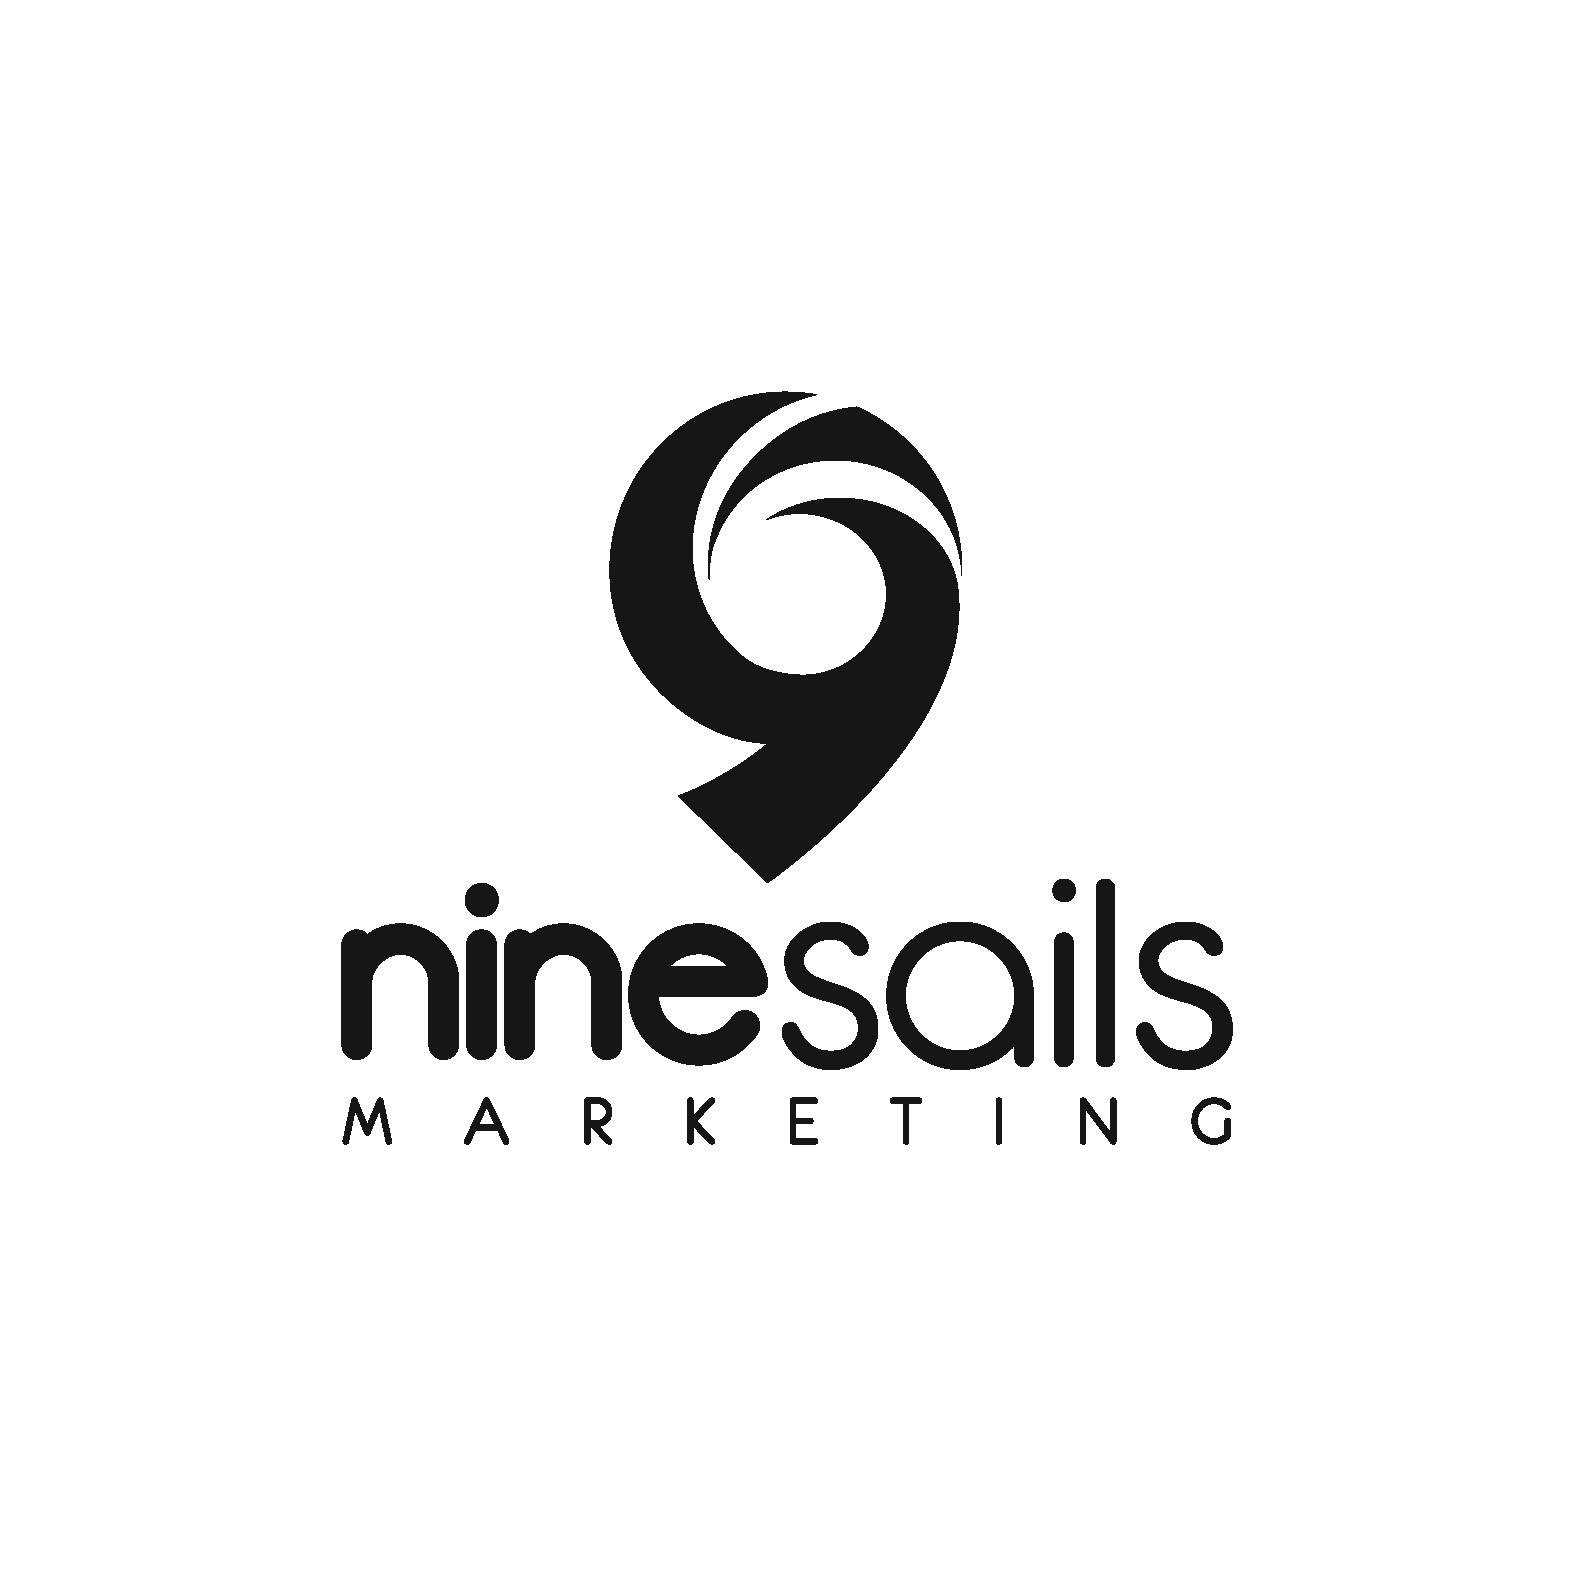 Create an impactful brand image logo for NineSails Marketing